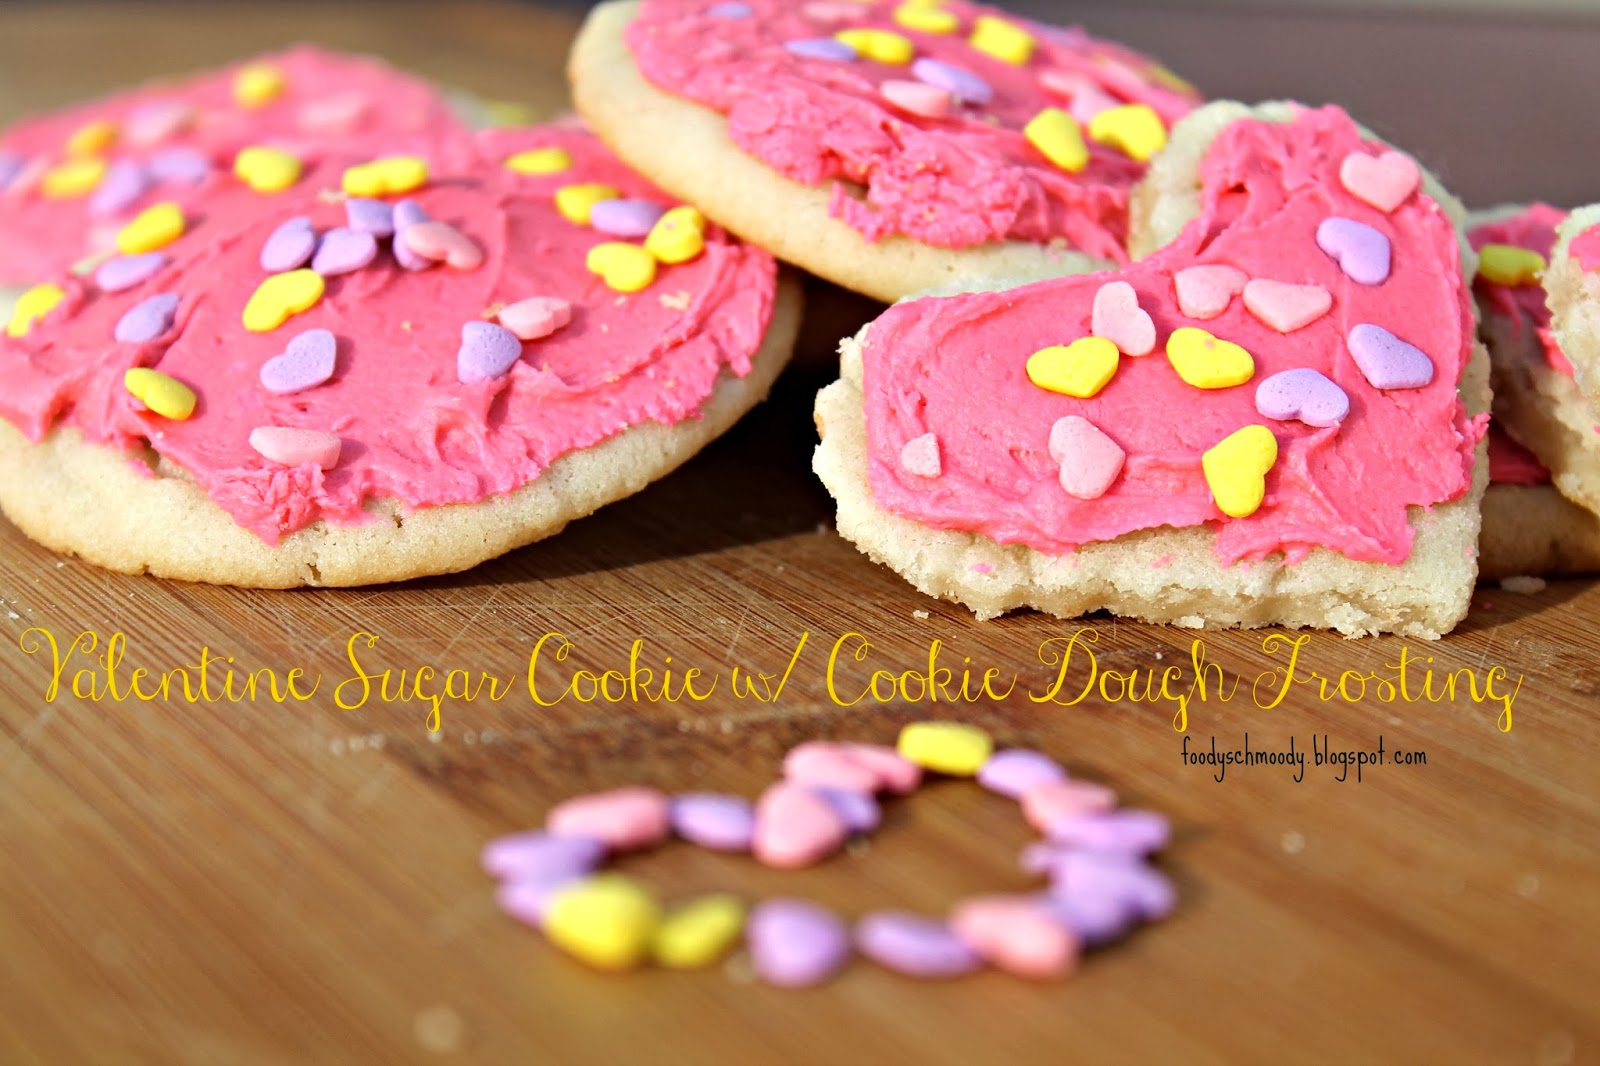 valentine cookie with cookie dough frosting